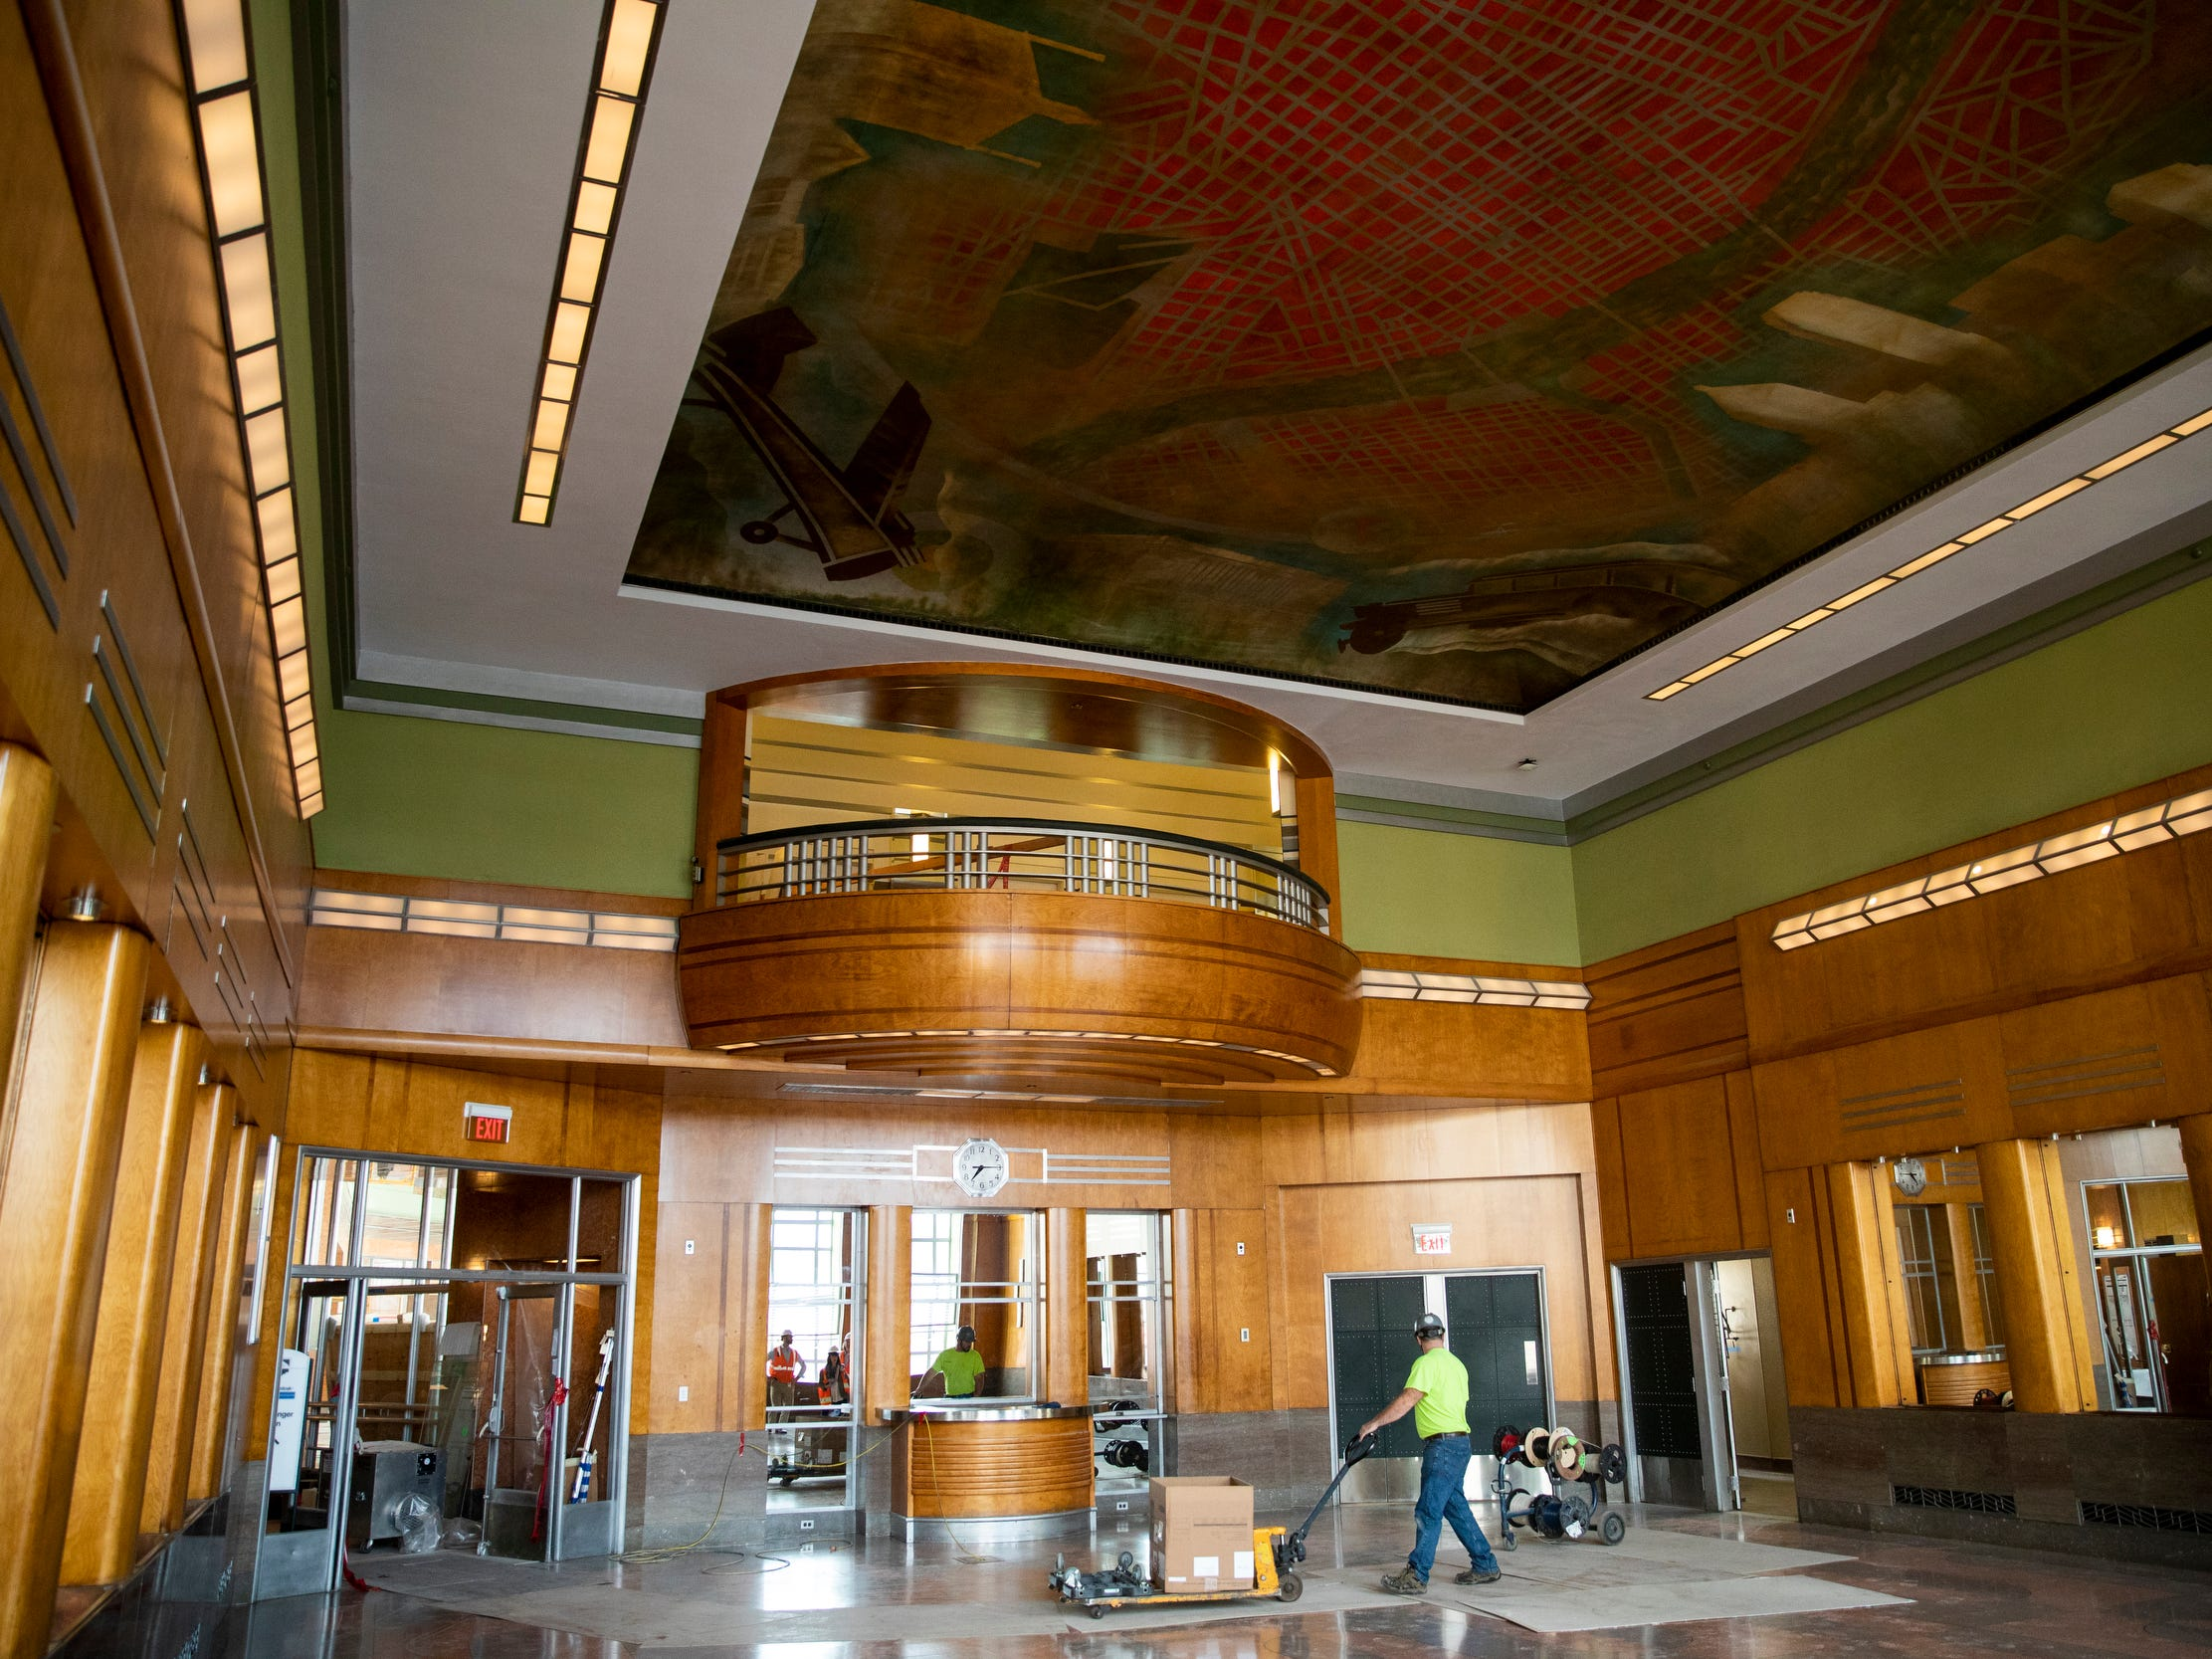 The dining room of The Cincinnati Museum Center at Union Terminal has been restored as part of the $228 million project. Art conservators cleaned the ceiling murals.